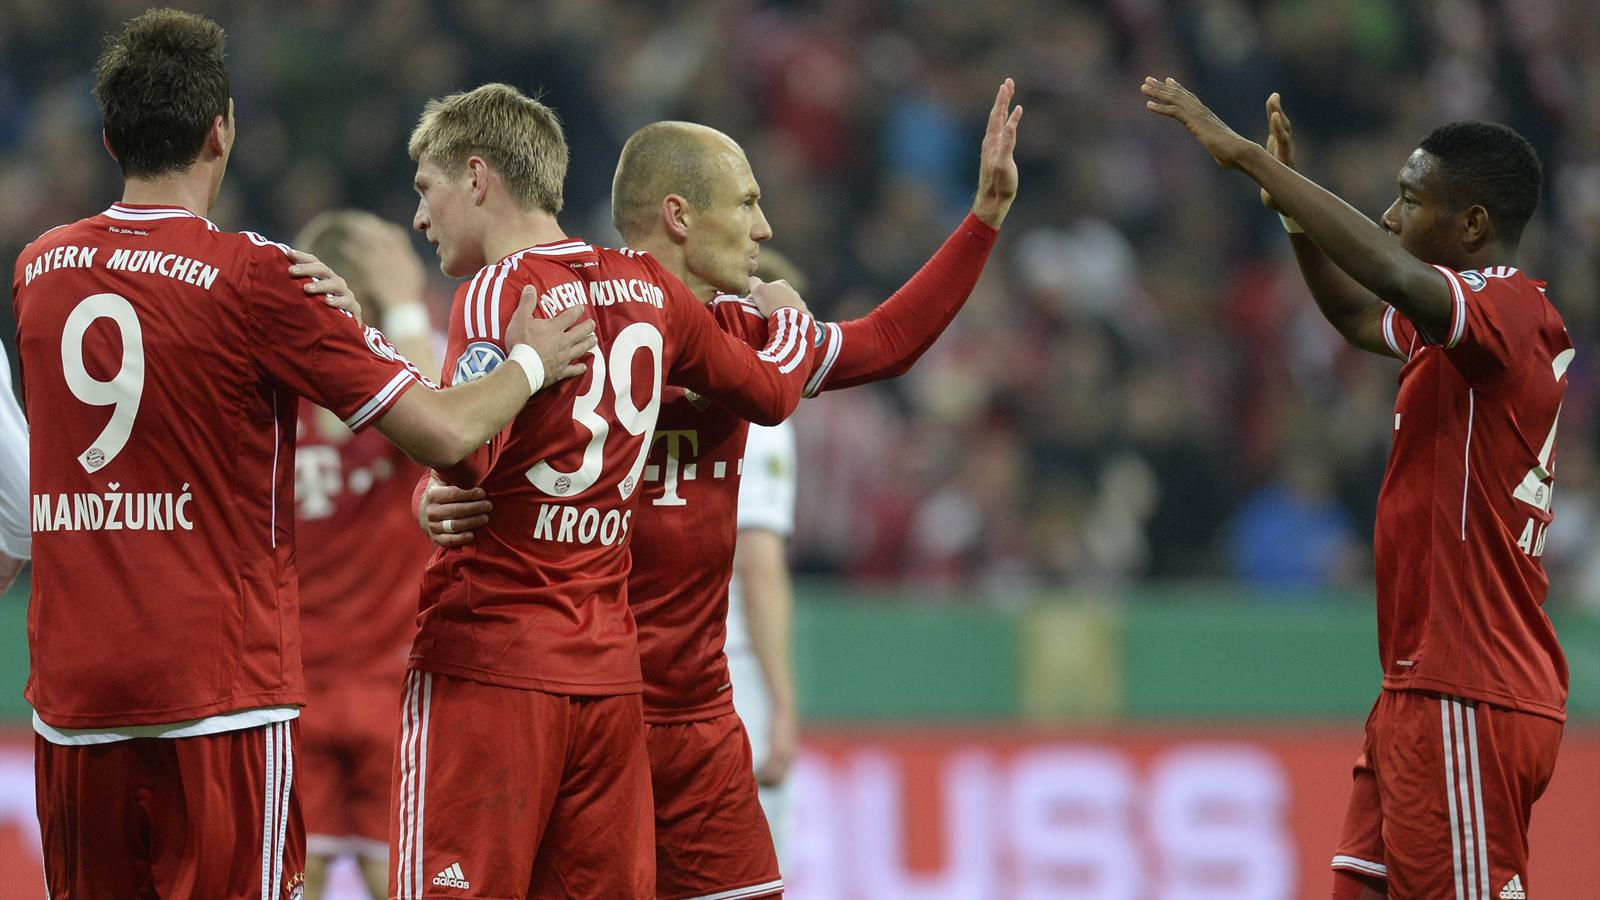 Bayern Munich's Croatian striker Mario Mandzukic, Bayern Munich's midfielder Toni Kroos, Bayern Munich's Dutch midfielder Arjen Robben and Bayern Munich's Austrain midfielder David Alaba celebrate after the second goal during the German Cup (DFB Pokal)